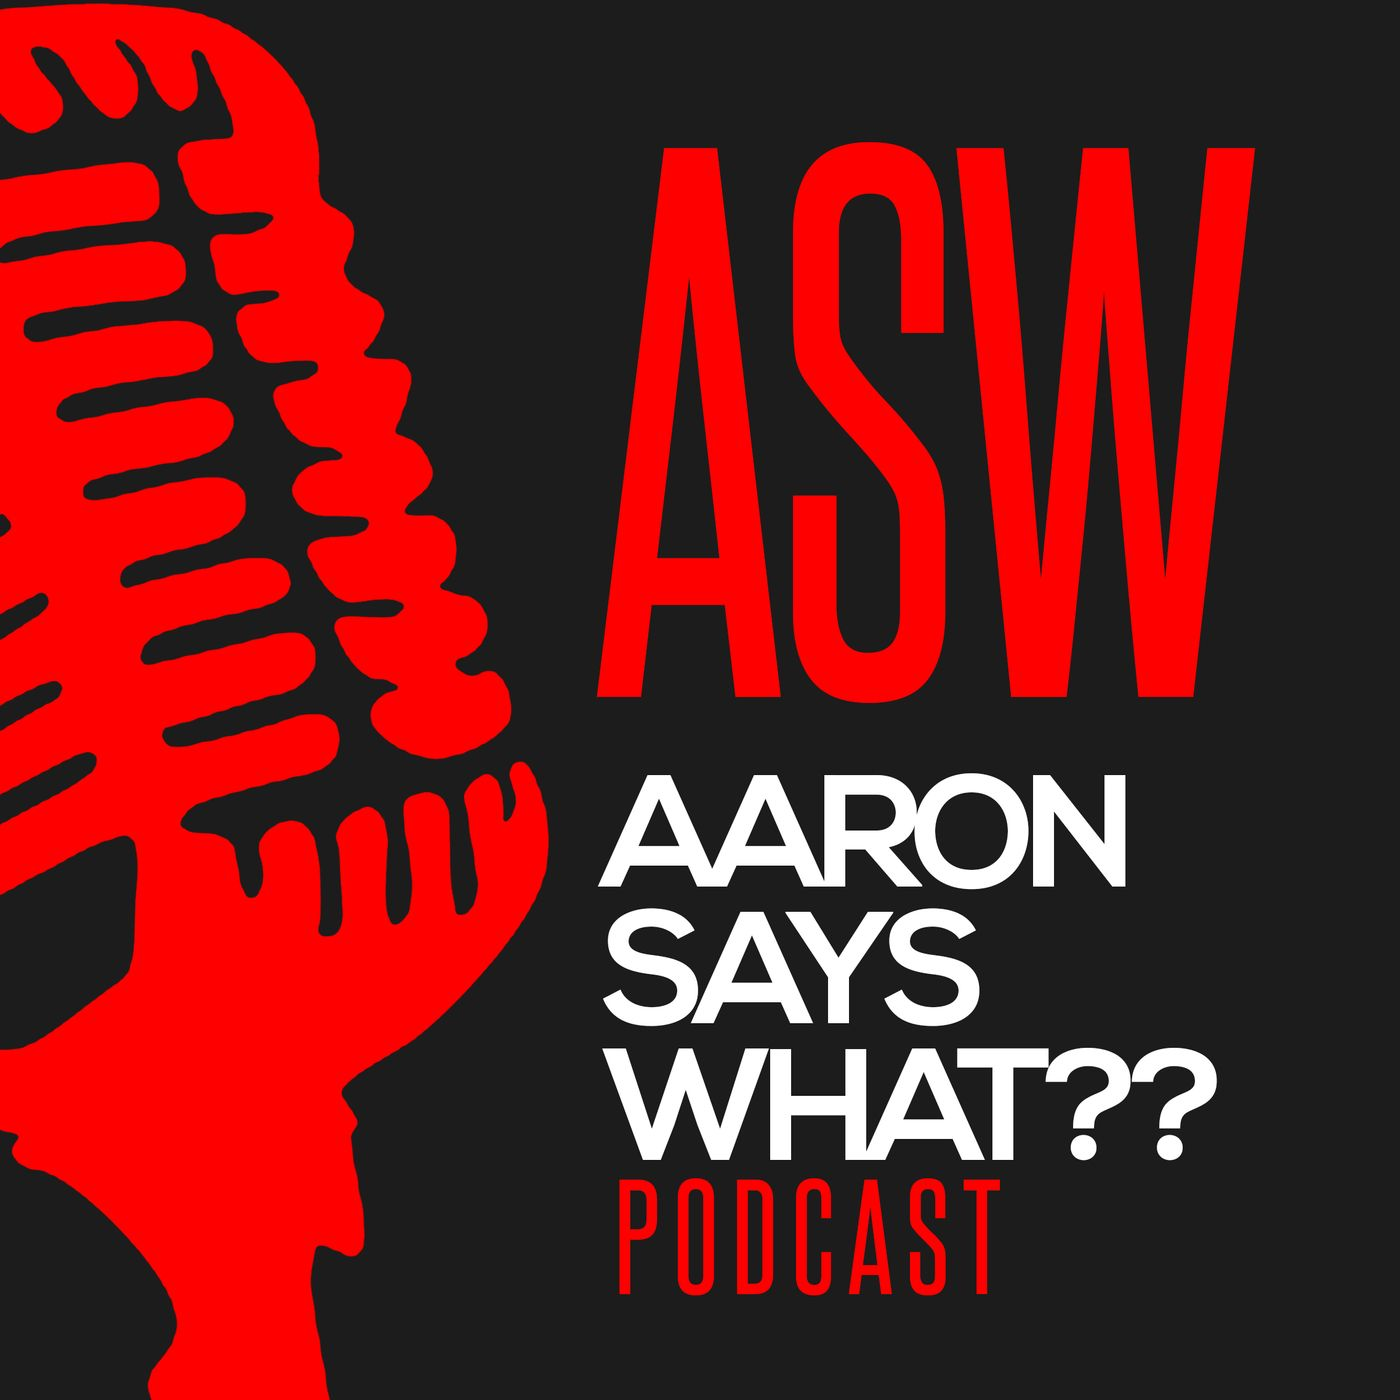 aaron says what?? podcast